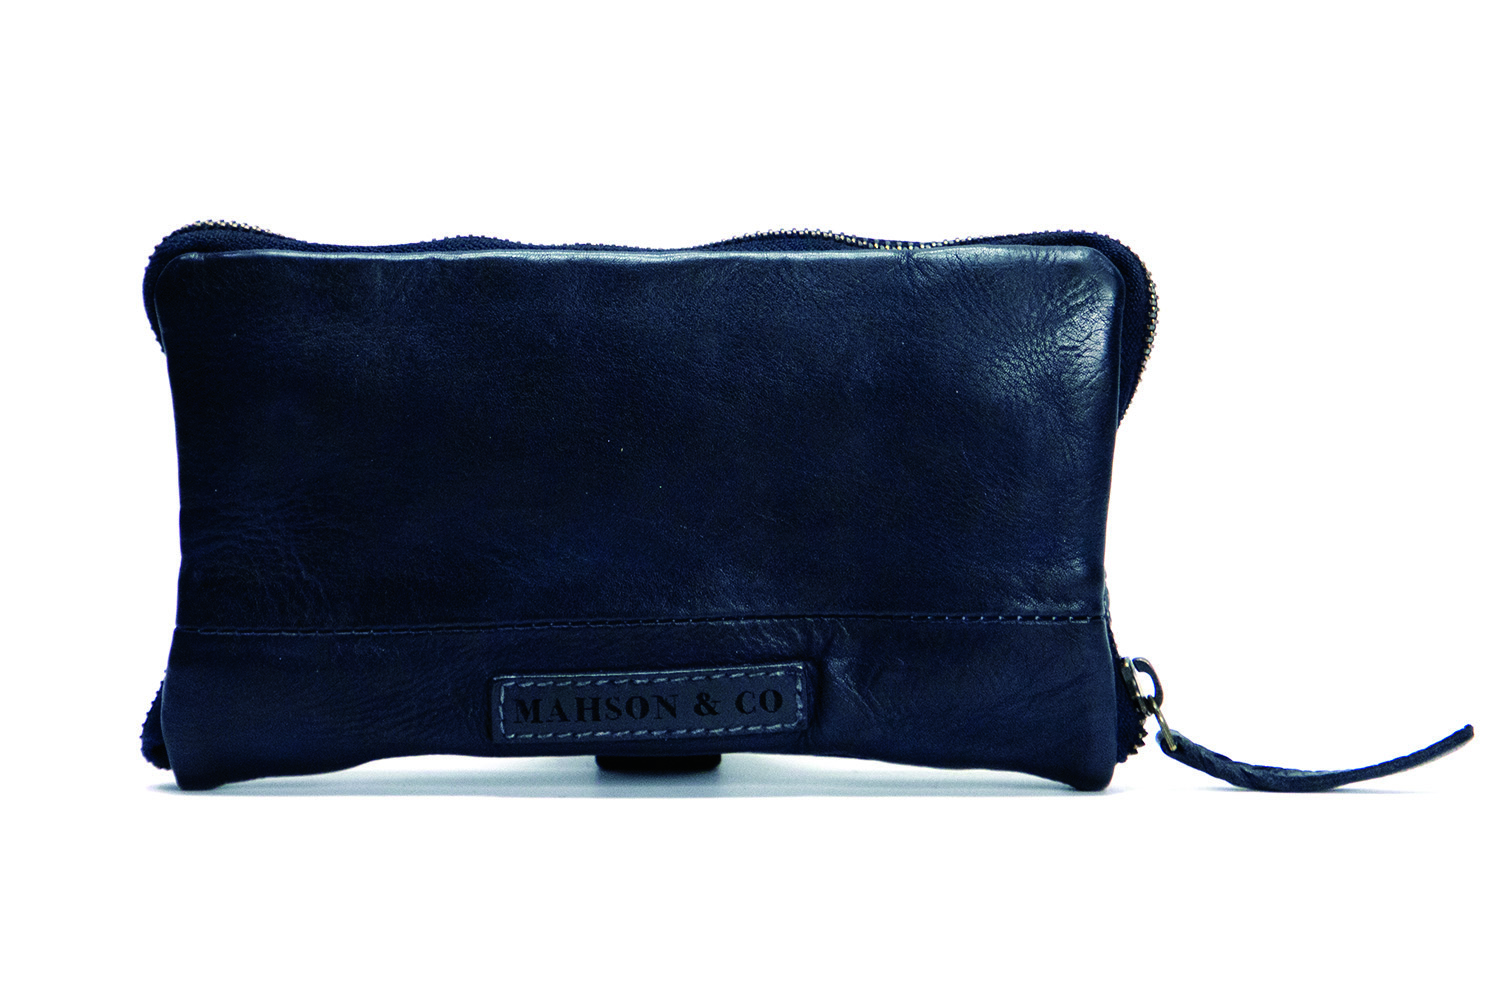 Vintage, retro and boho inspired leather wallet - navy